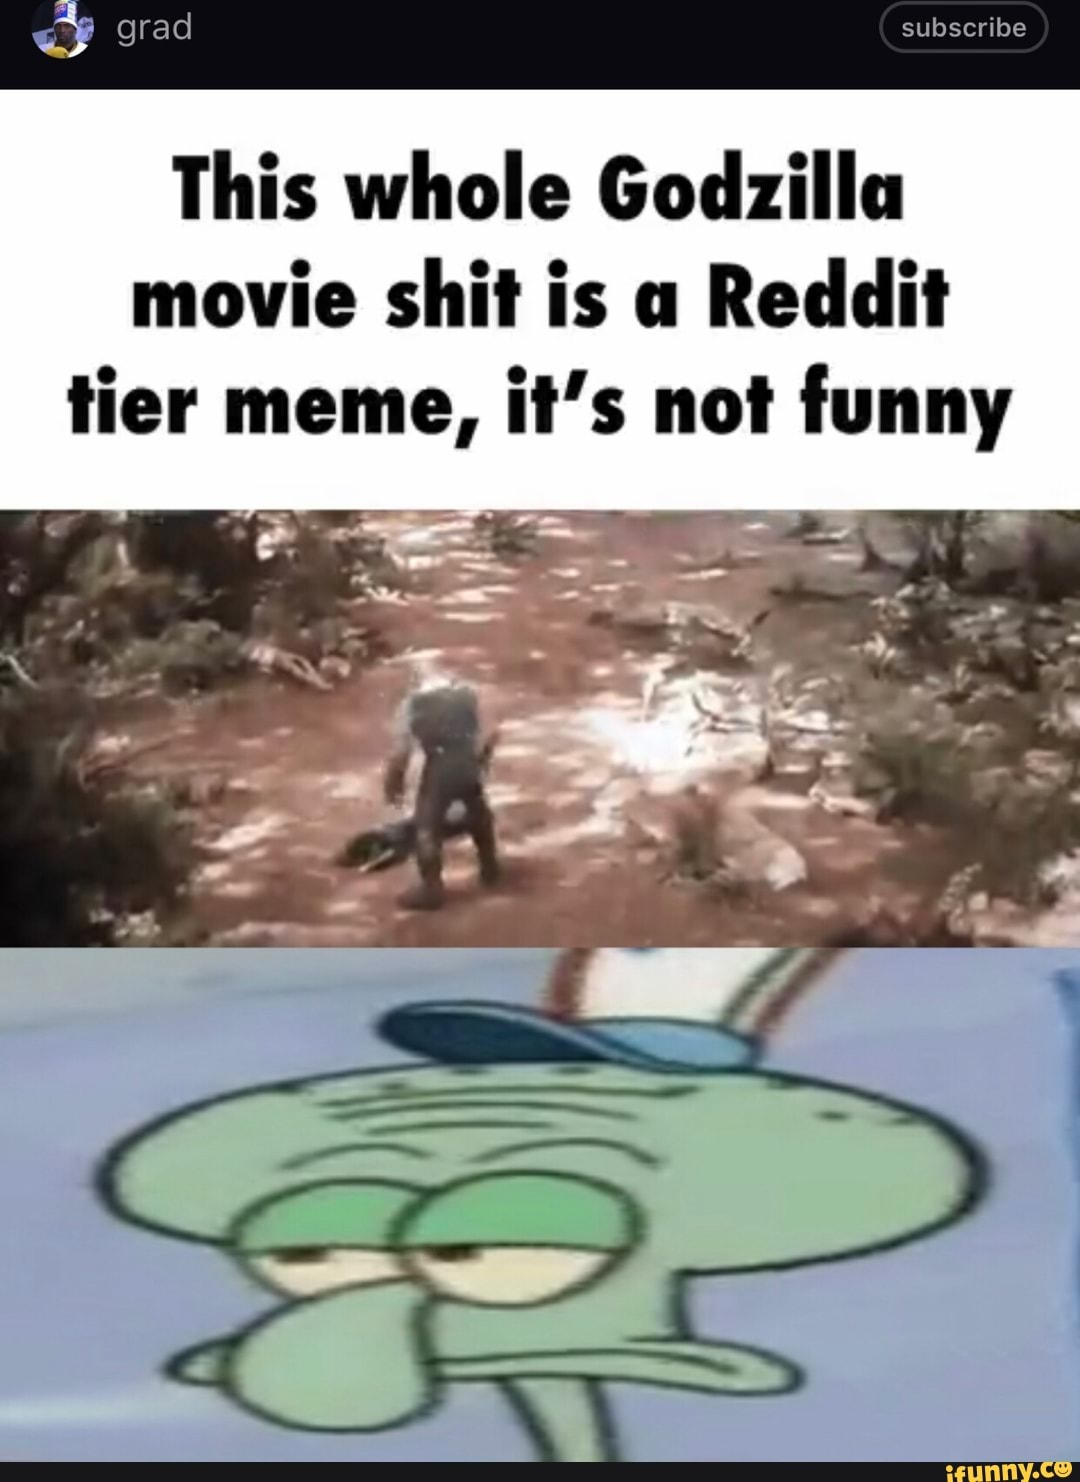 This Whole Godzilla Movie Shit Is A Reddit Tier Meme It S Not Funny Ifunny No spoilers for any movie that is less than a year old. shit is a reddit tier meme